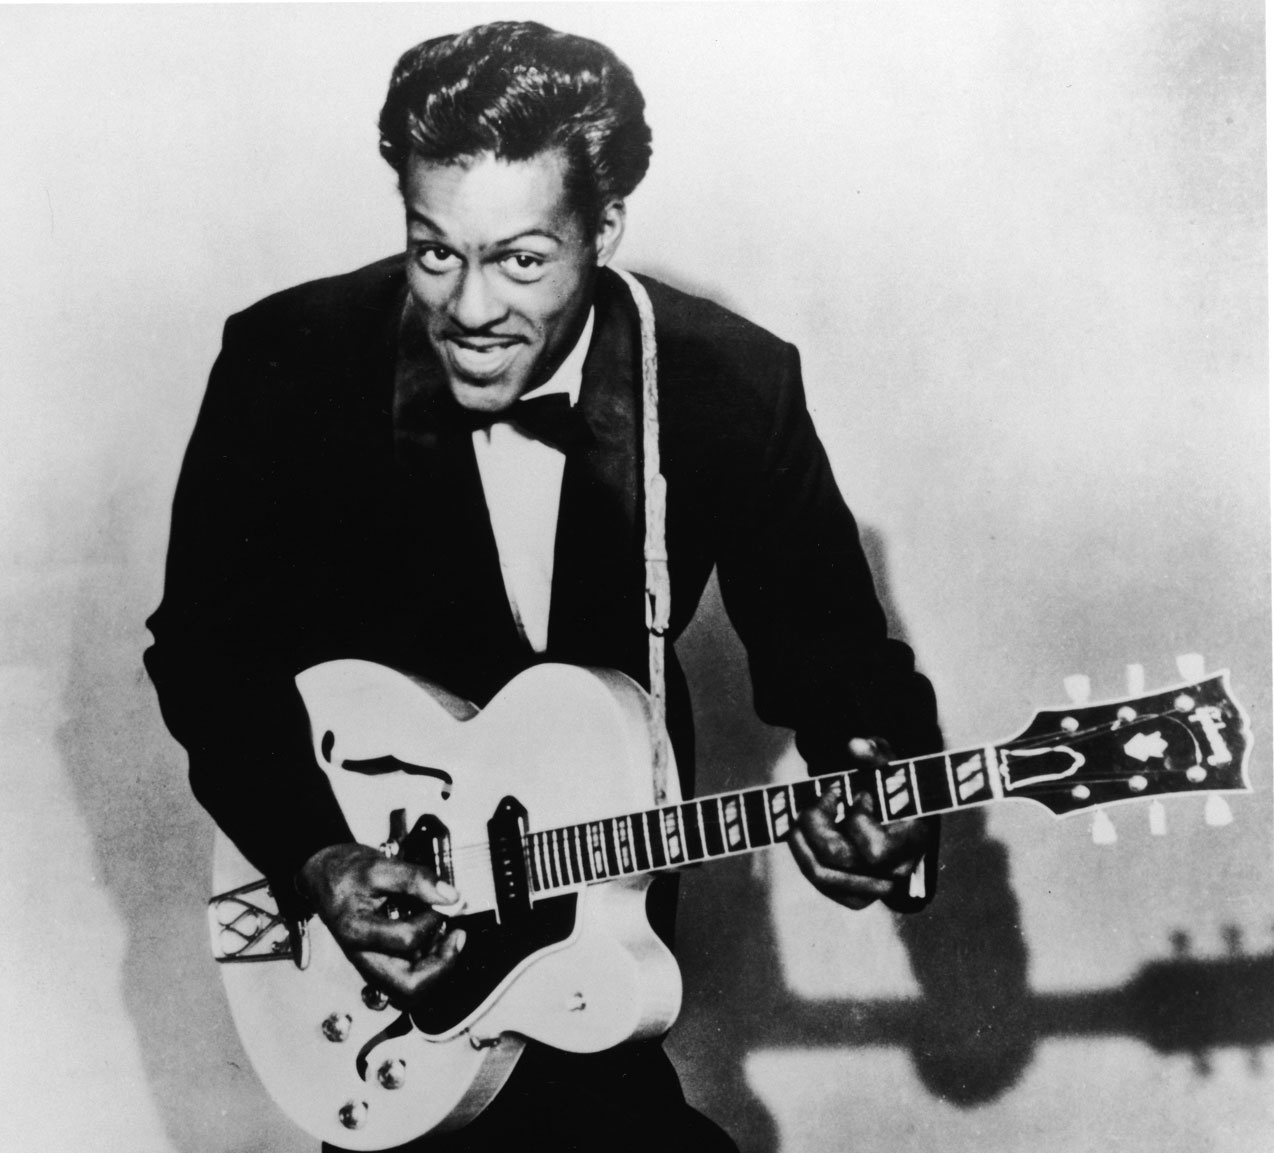 Chuck Berry's 2017 album Chuck confirmed for release